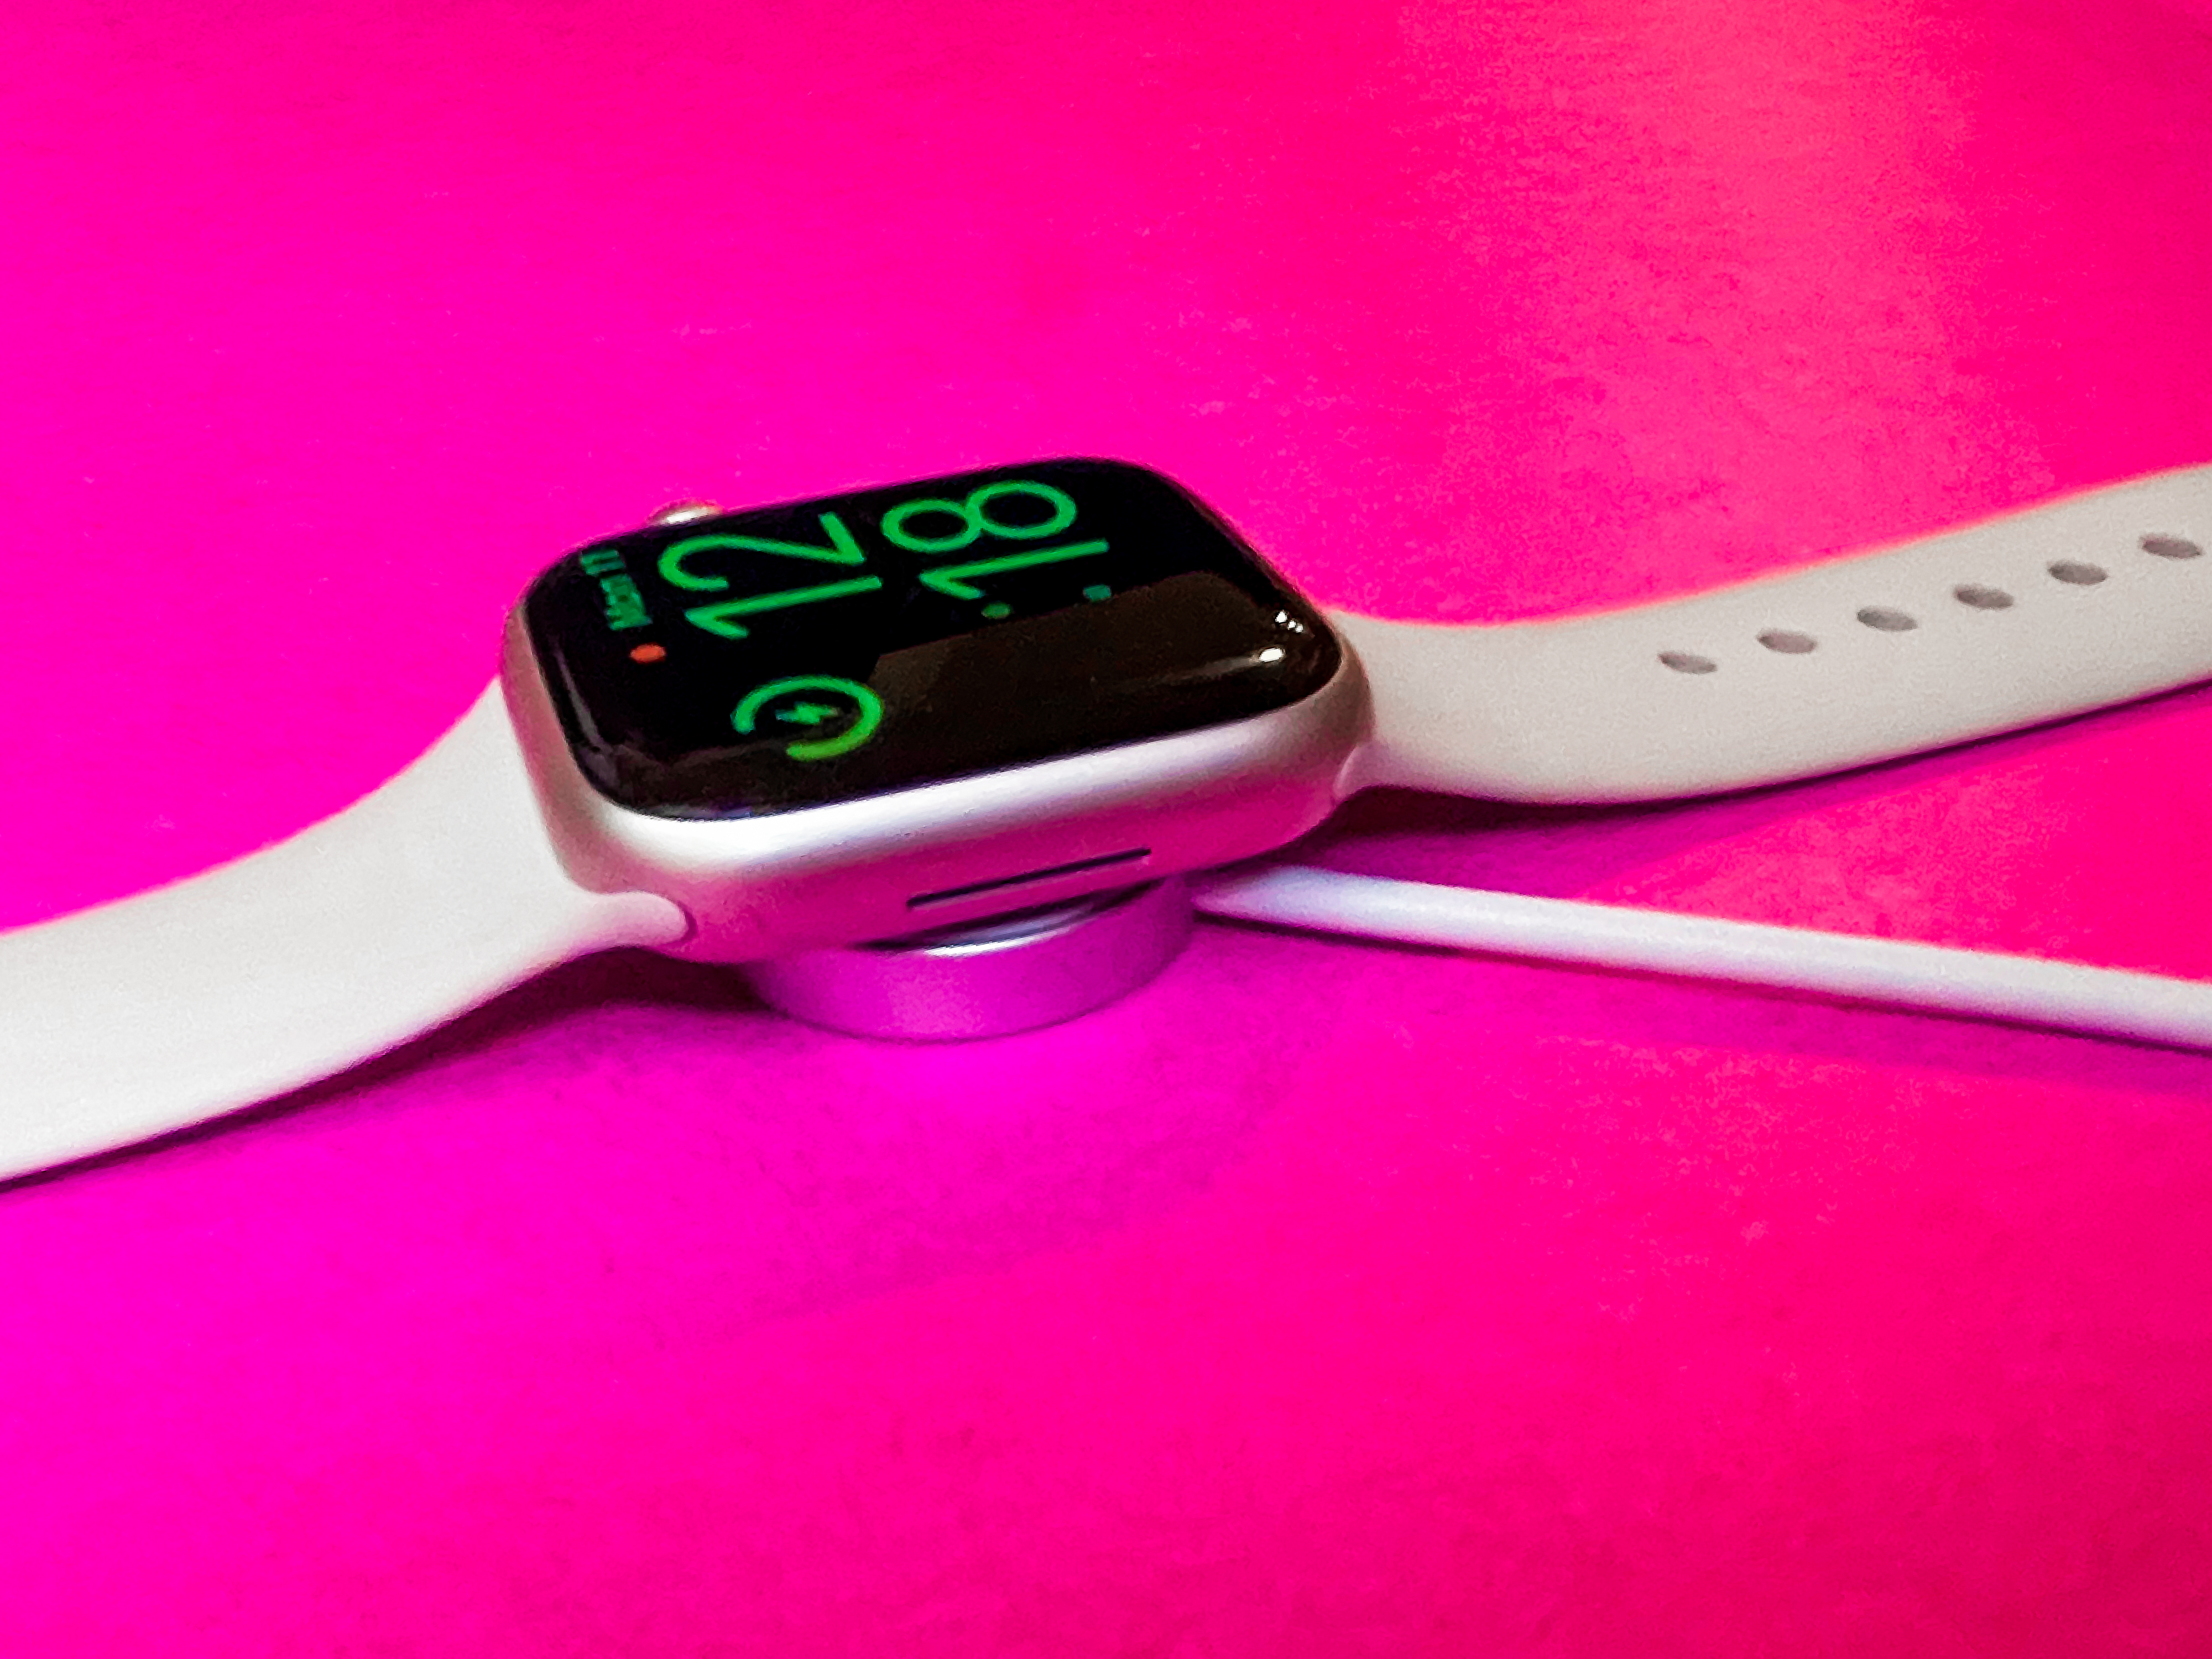 apple-watch-series-7-cnet-review-2021-036